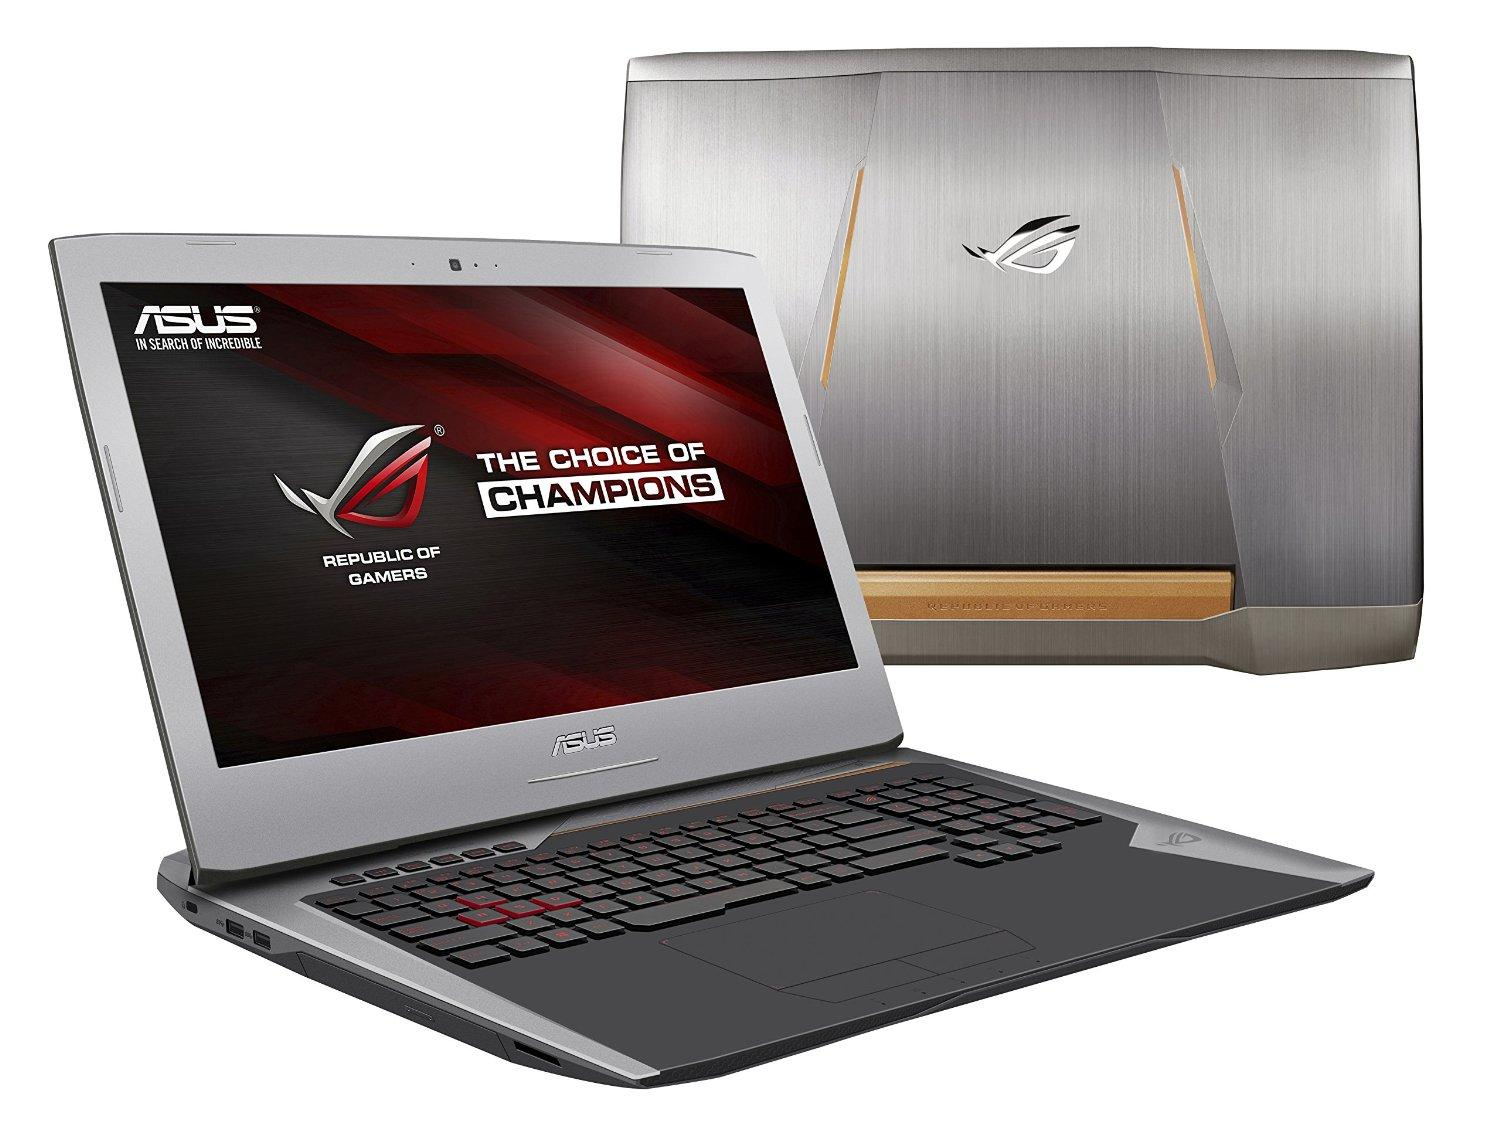 $1299.00 ASUS ROG G752 Signature Edition Touch Screen Gaming Laptop(i7,24gbRam,256GBSSD.GTX965M)